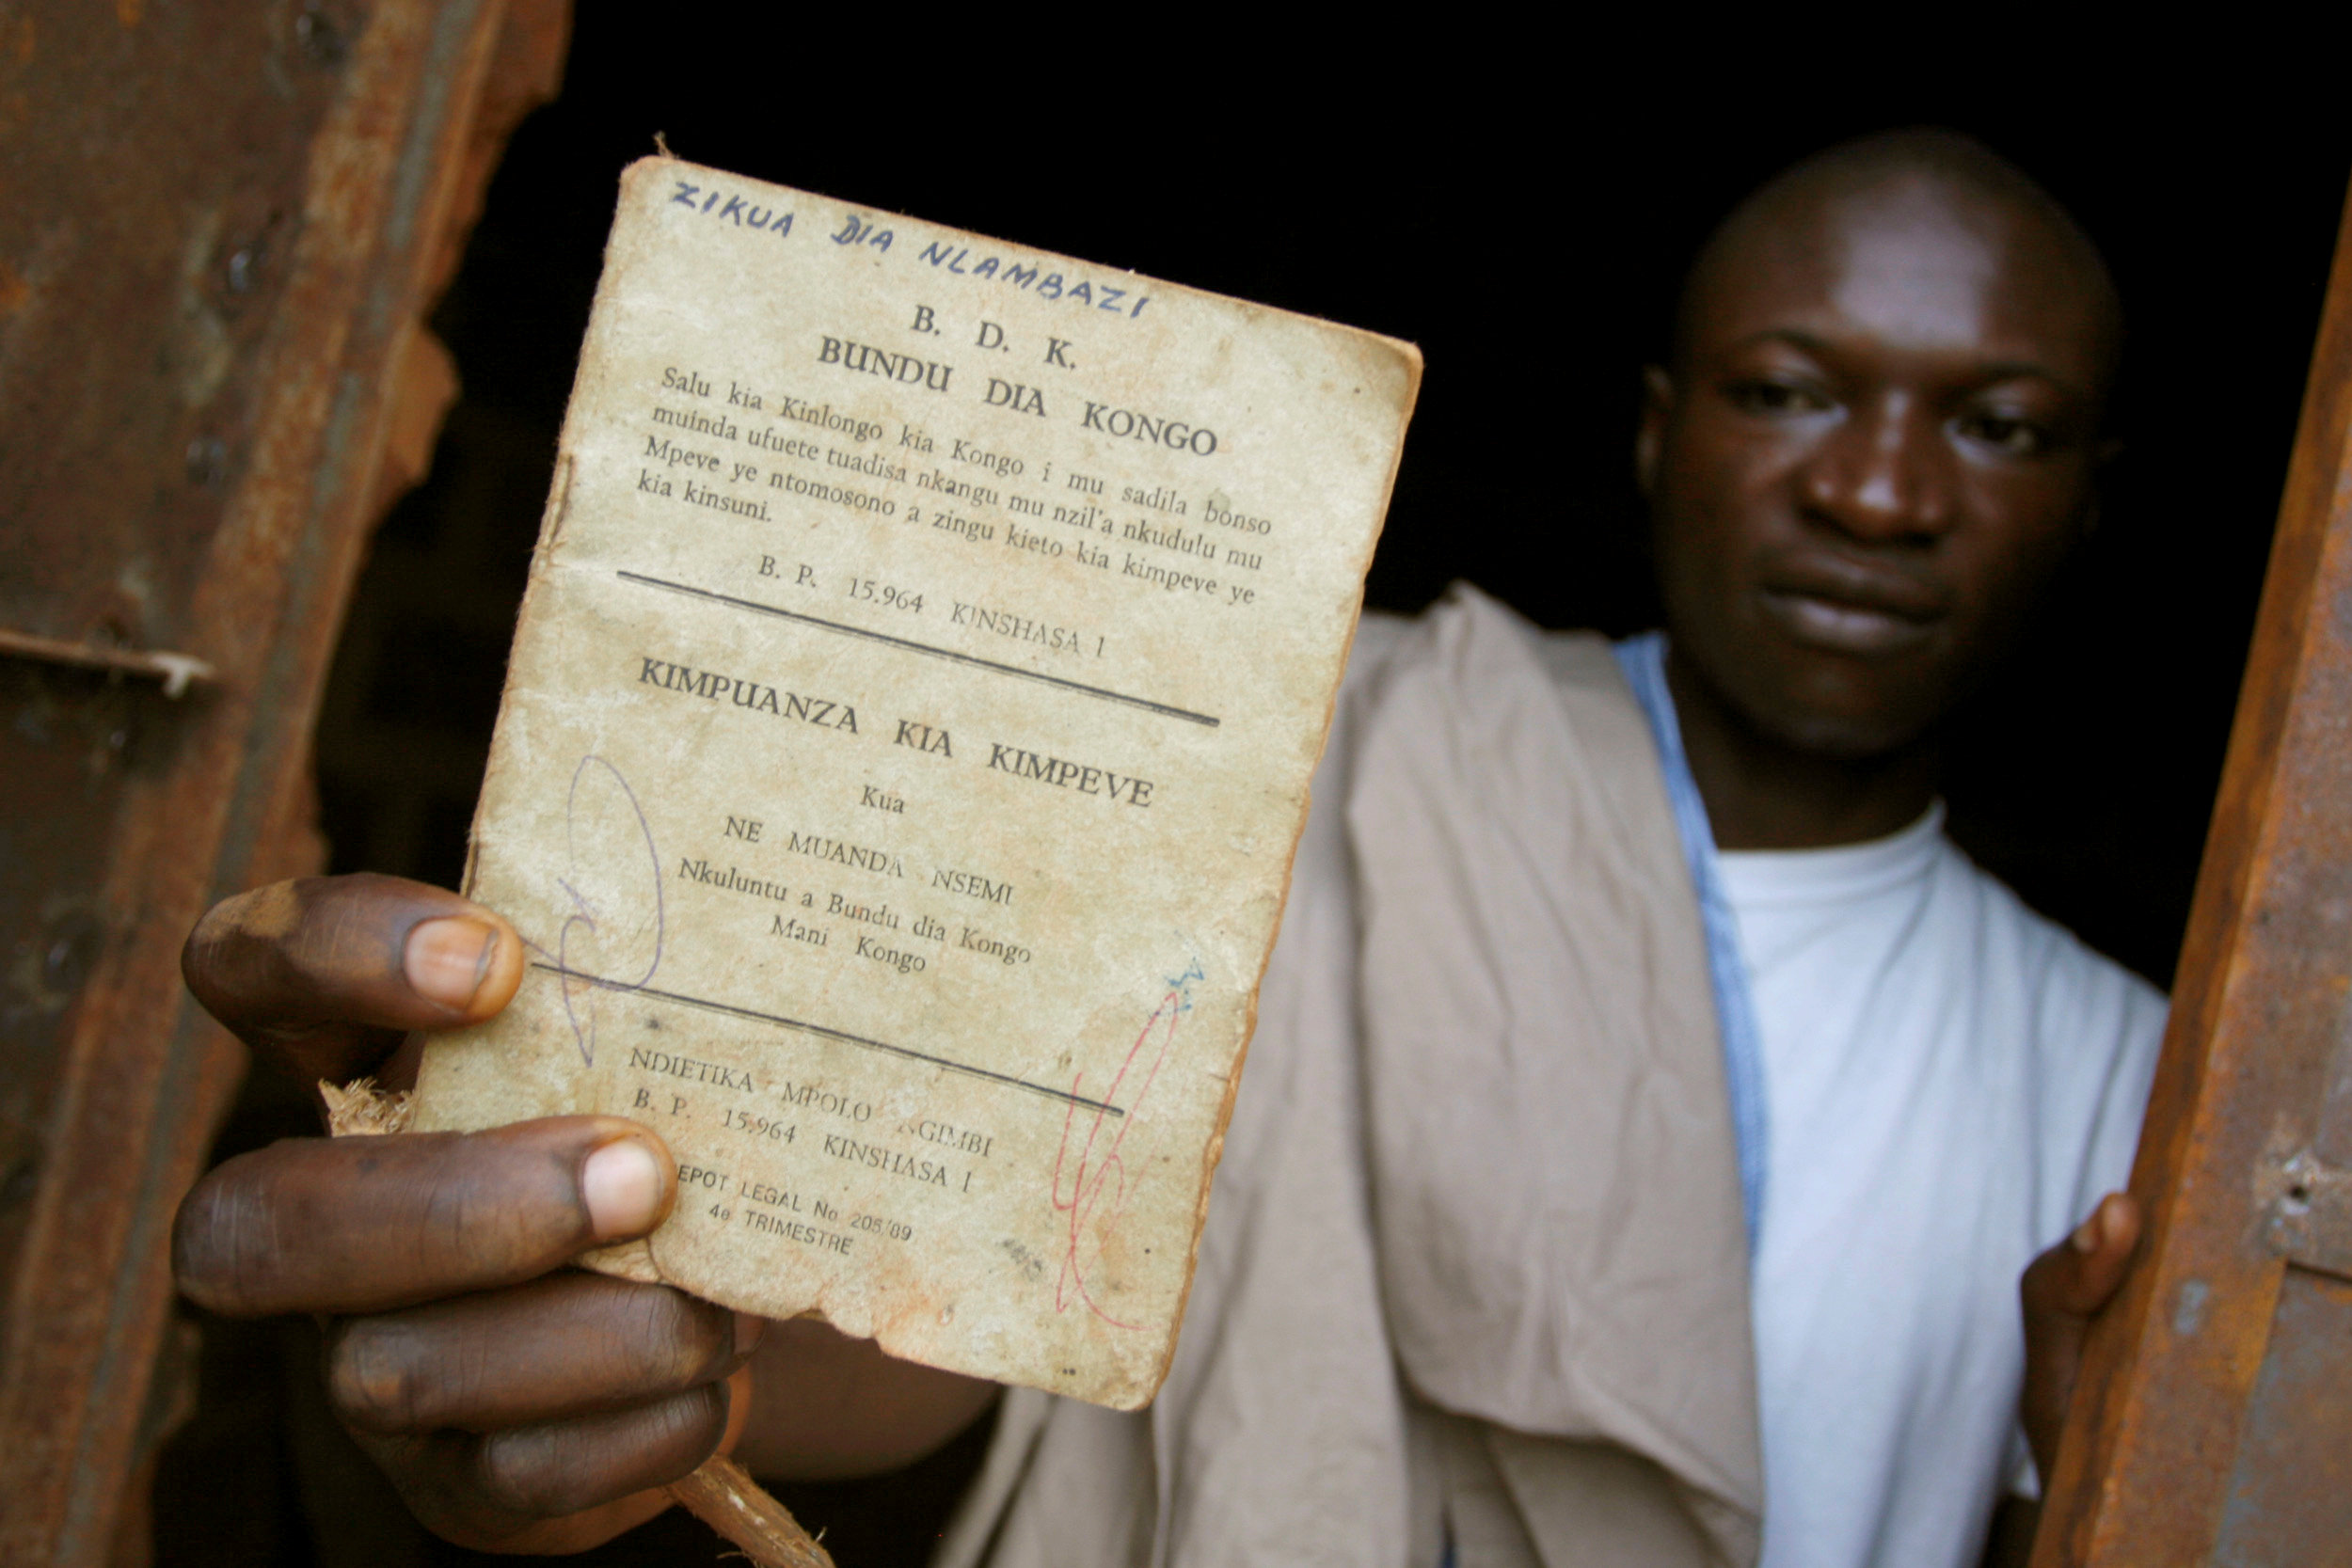 FILE PHOTO: A resident holds up a Bundu dia Kongo manifesto left behind after a police crackdown on the religious and political movement in Matadi, capital of Democratic Republic of Congo's volatile Bas Congo province, March 18, 2008.REUTERS/Joe Bavier/File Photo